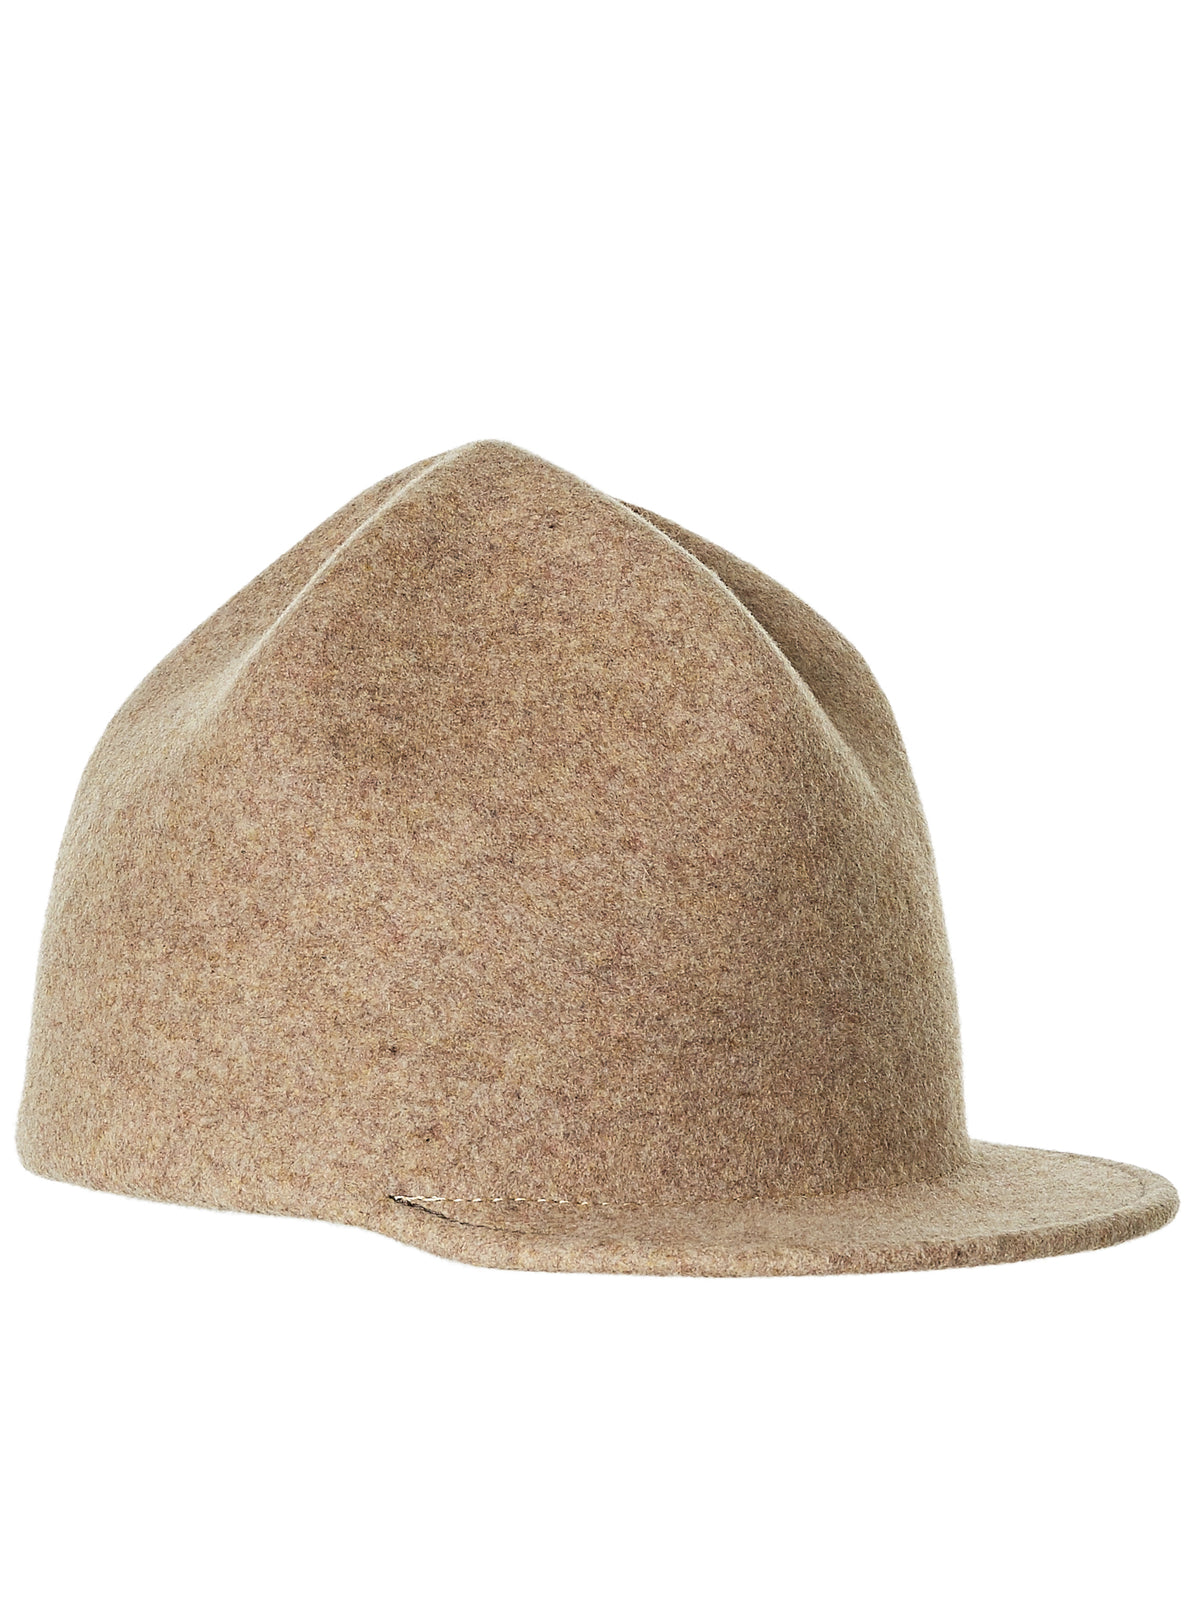 Crumpled Crown Cap (018-MIX-BEIGE)